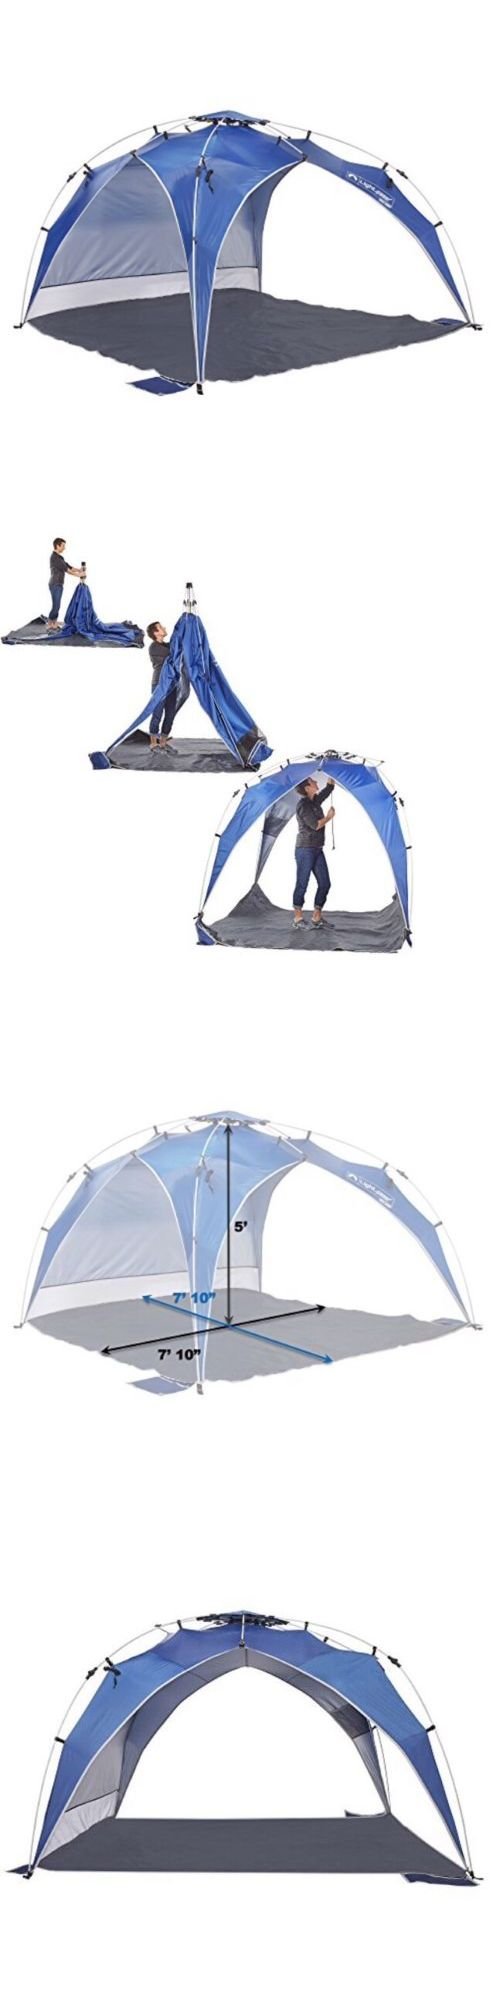 Canopies and Shelters 179011: Lightspeed Outdoors Quick Canopy Instant Pop Up Shade Tent New -> BUY IT NOW ONLY: $74.95 on eBay!